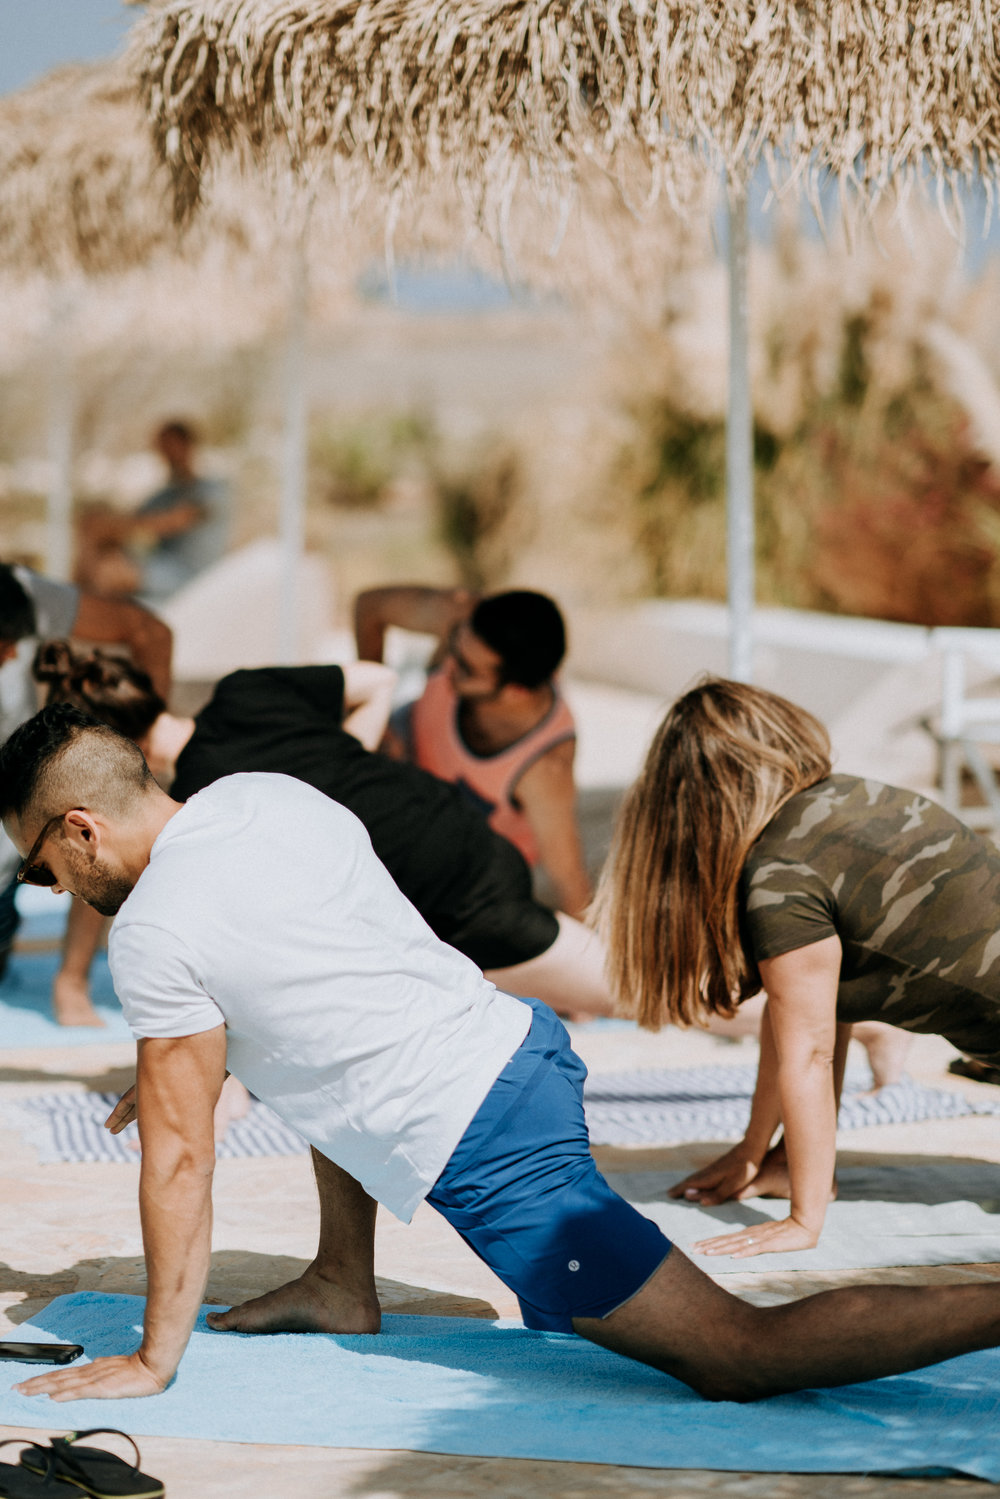 Say goodbye to your tight shoulders and back and hello to release. - Yoga Workshop by Illuminate Yoga for tight shoulders, stiff neck and upper back.